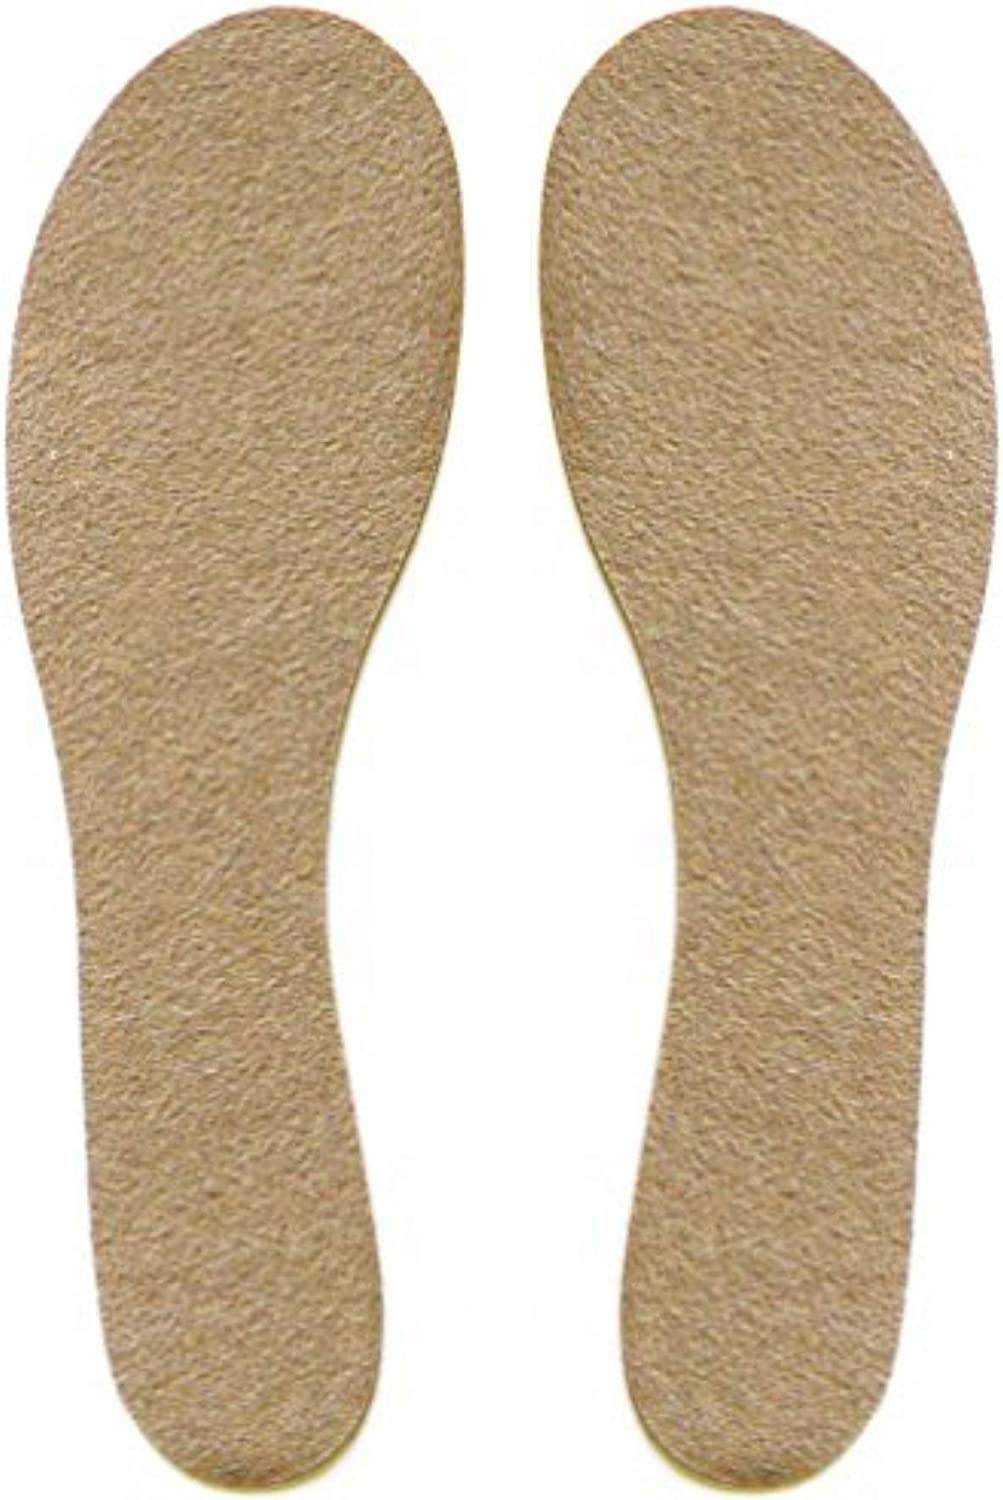 Summer Soles Ultra-Absorbent Stay-Dry